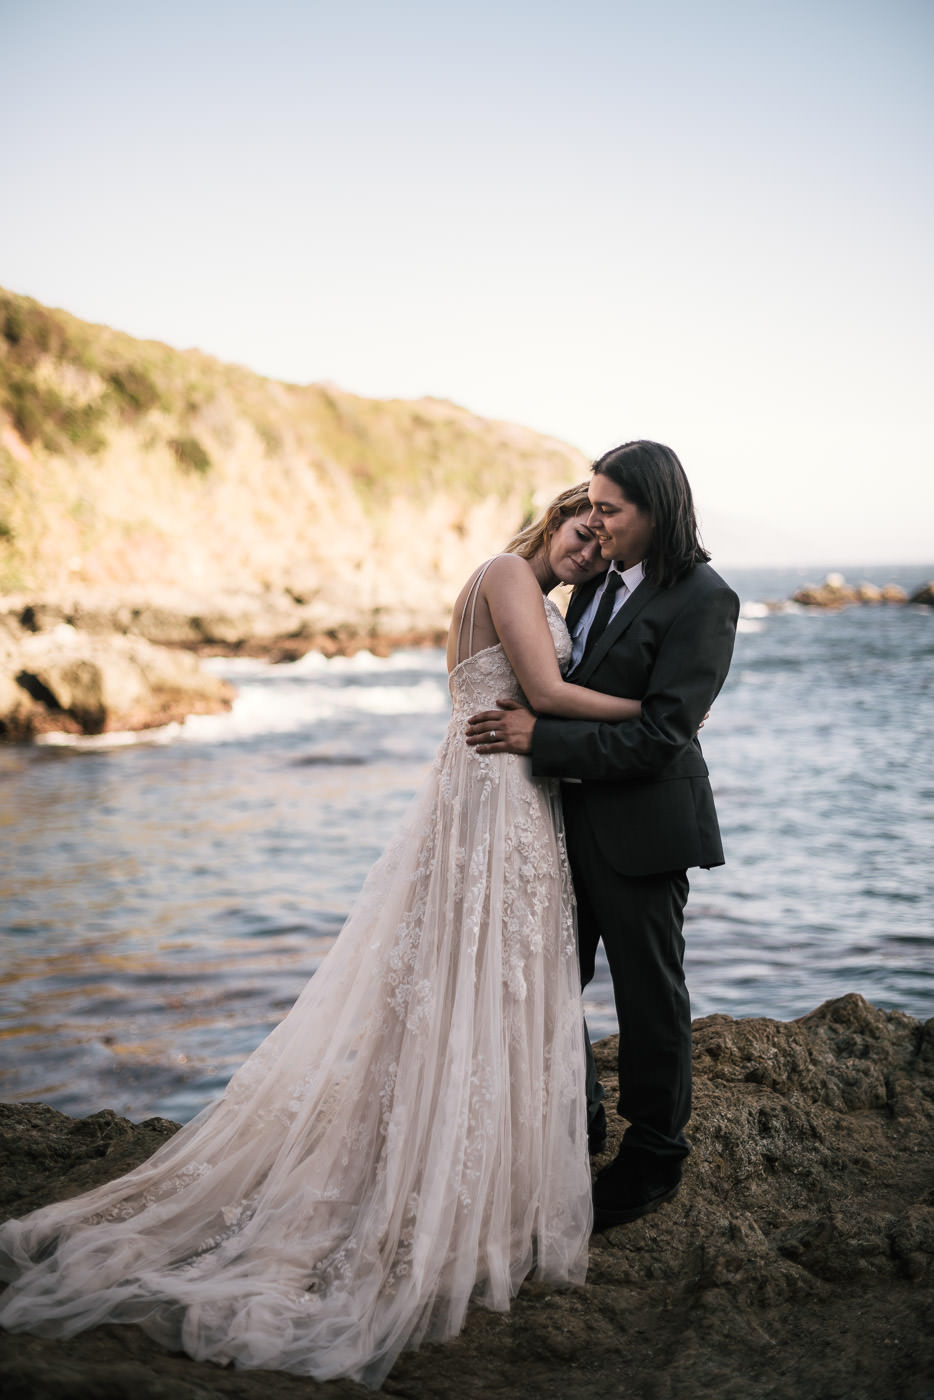 Two lovers have a romantic moment on the rocky shores of Big Sur after their intimate wedding.